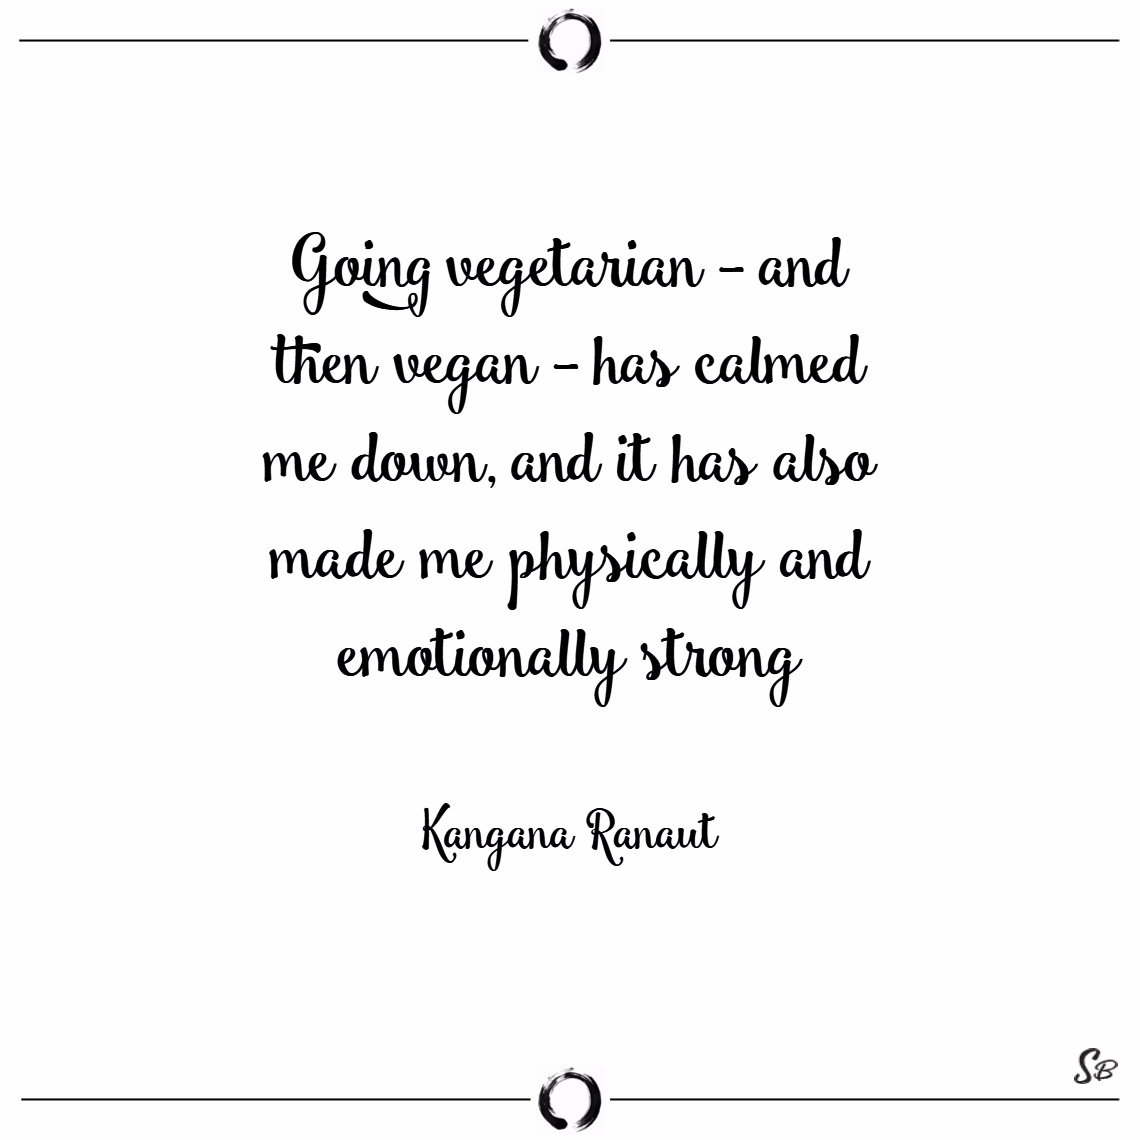 Oing vegetarian and then vegan has calmed me down, and it has also made me